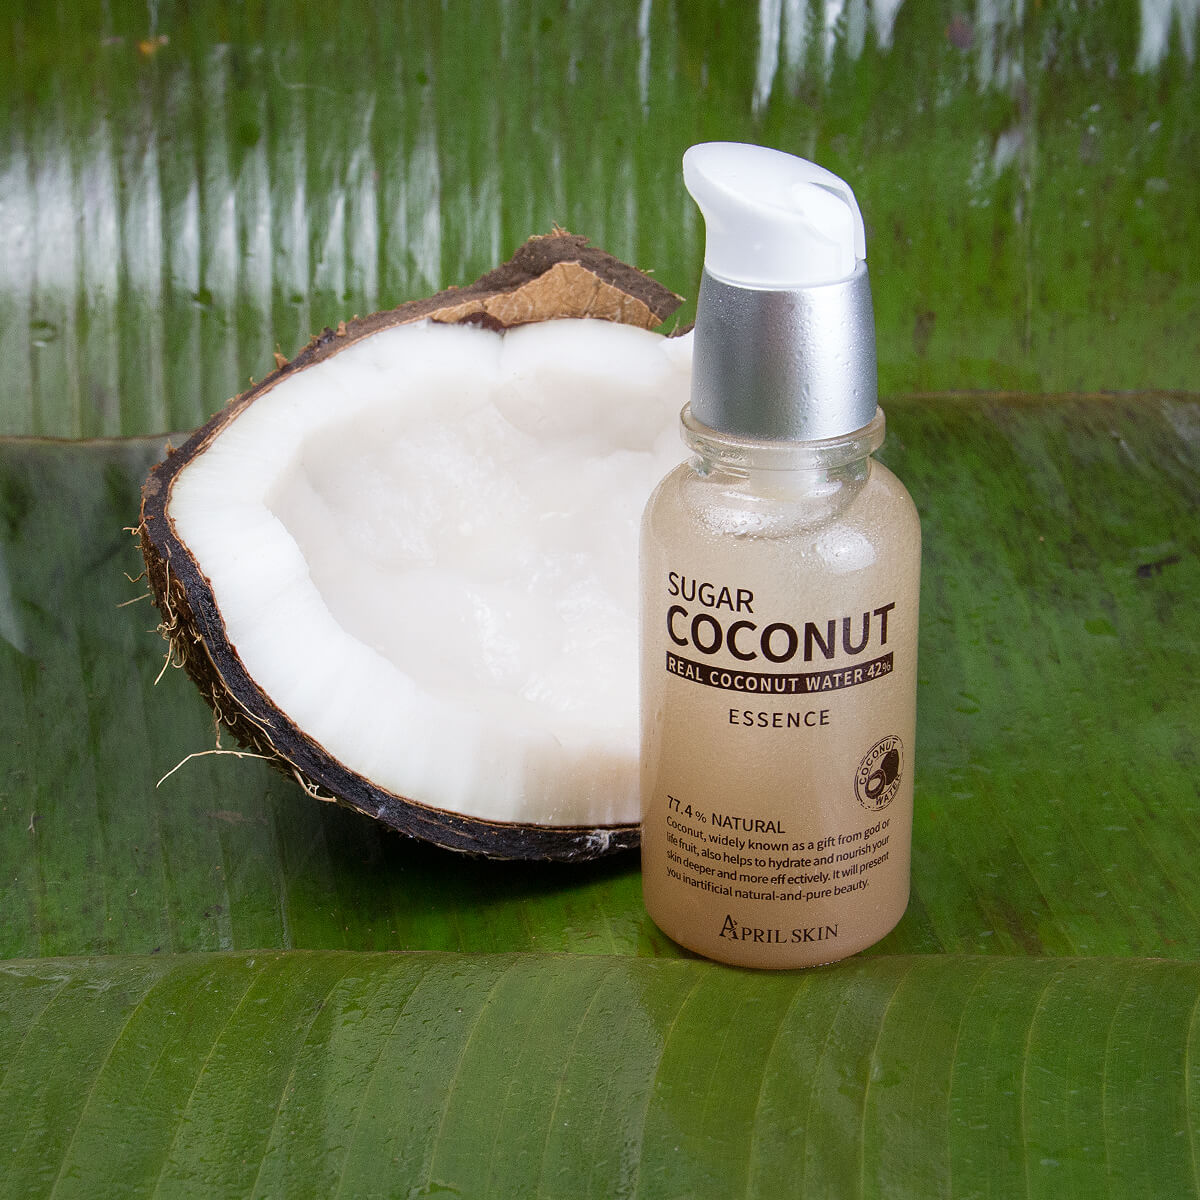 April_Skin_Sugar_Coconut_Essence_Real_Coconut_Water_42%